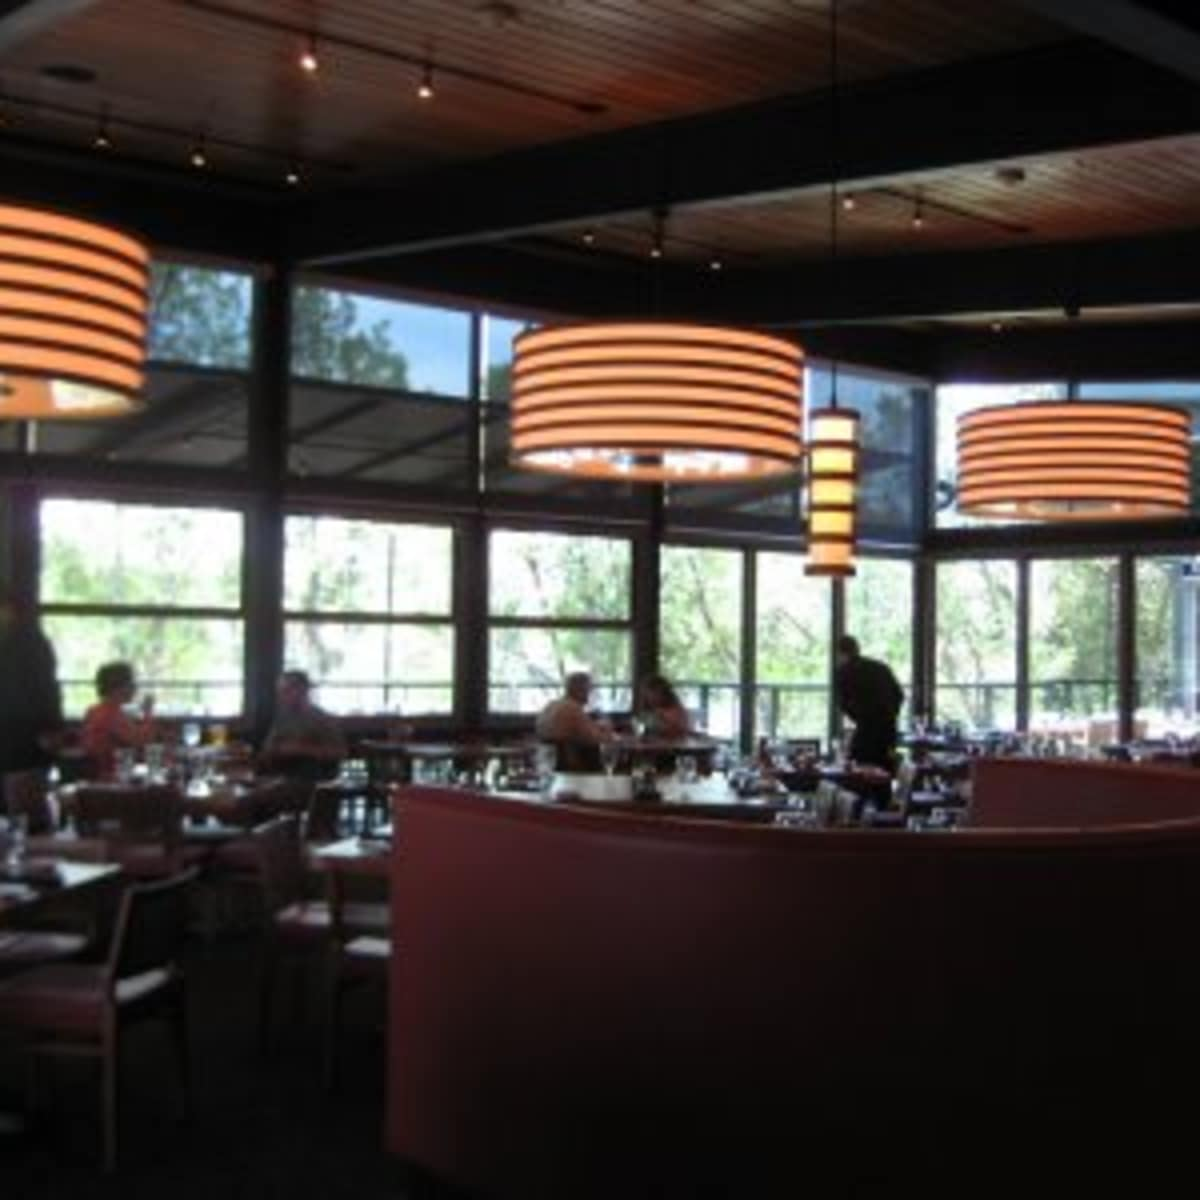 Austin_photo: places_food_roaring_fork_interior